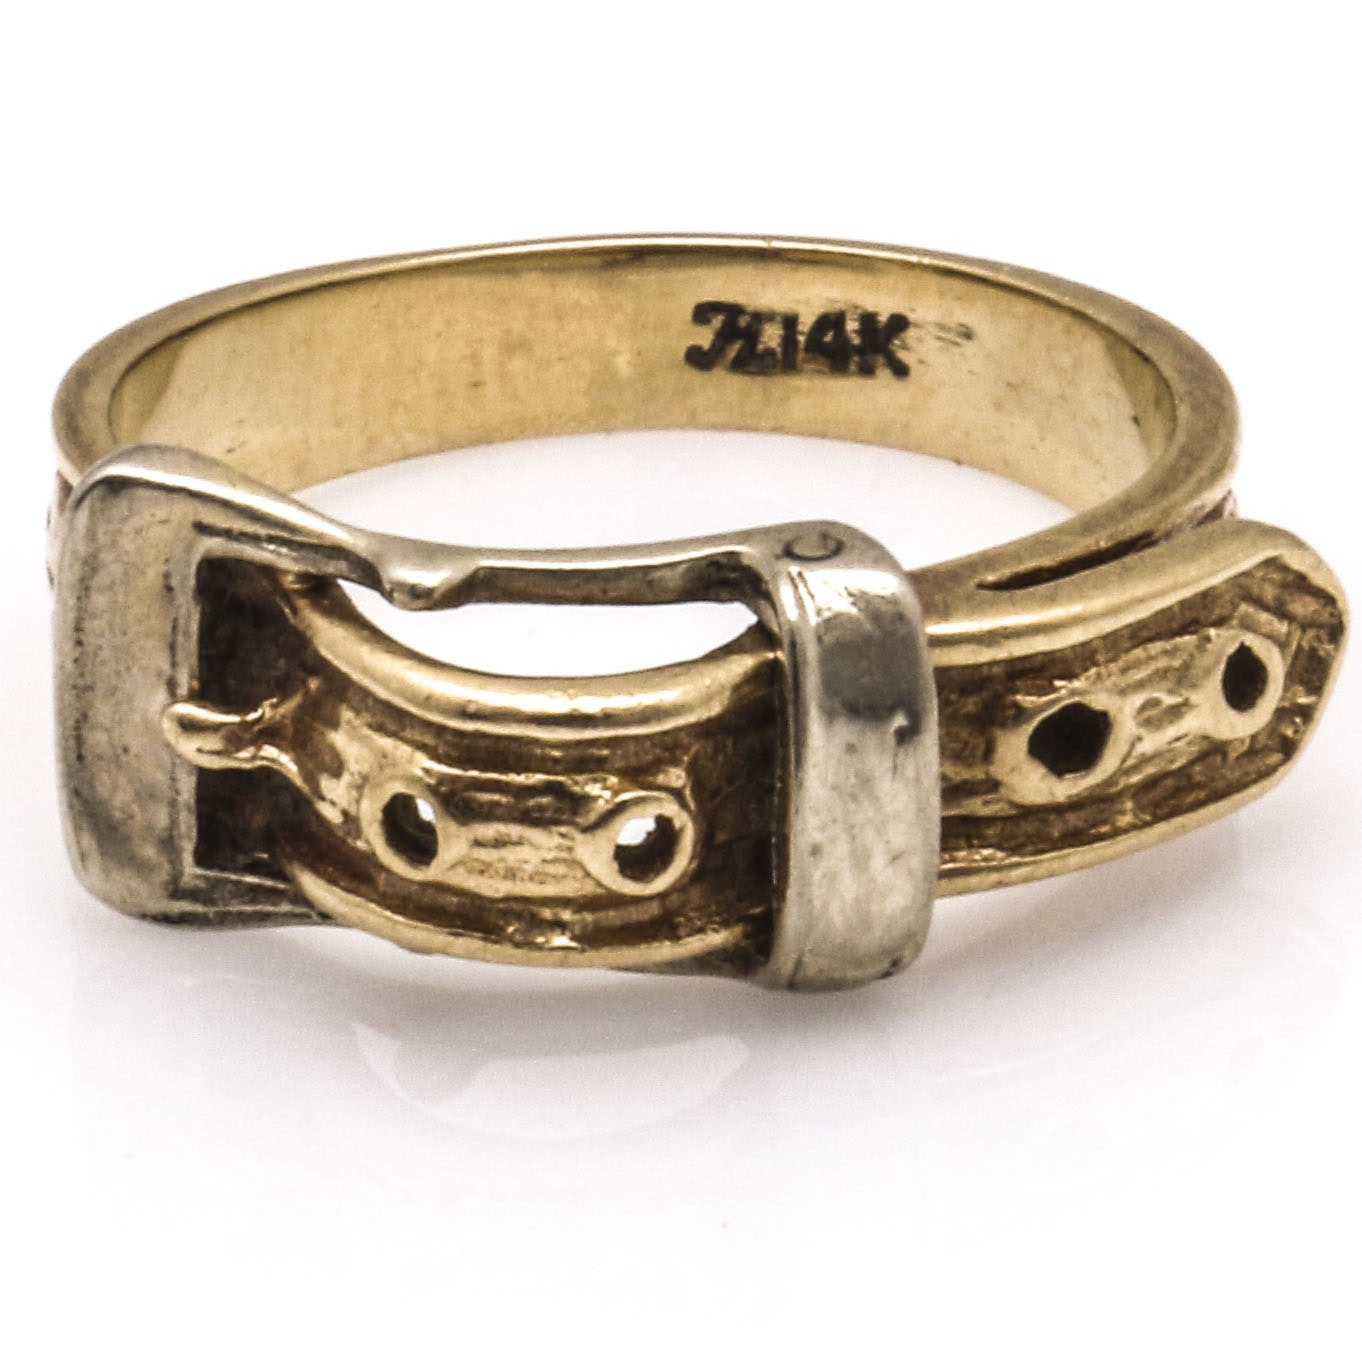 14K Yellow and White Gold Buckle Ring